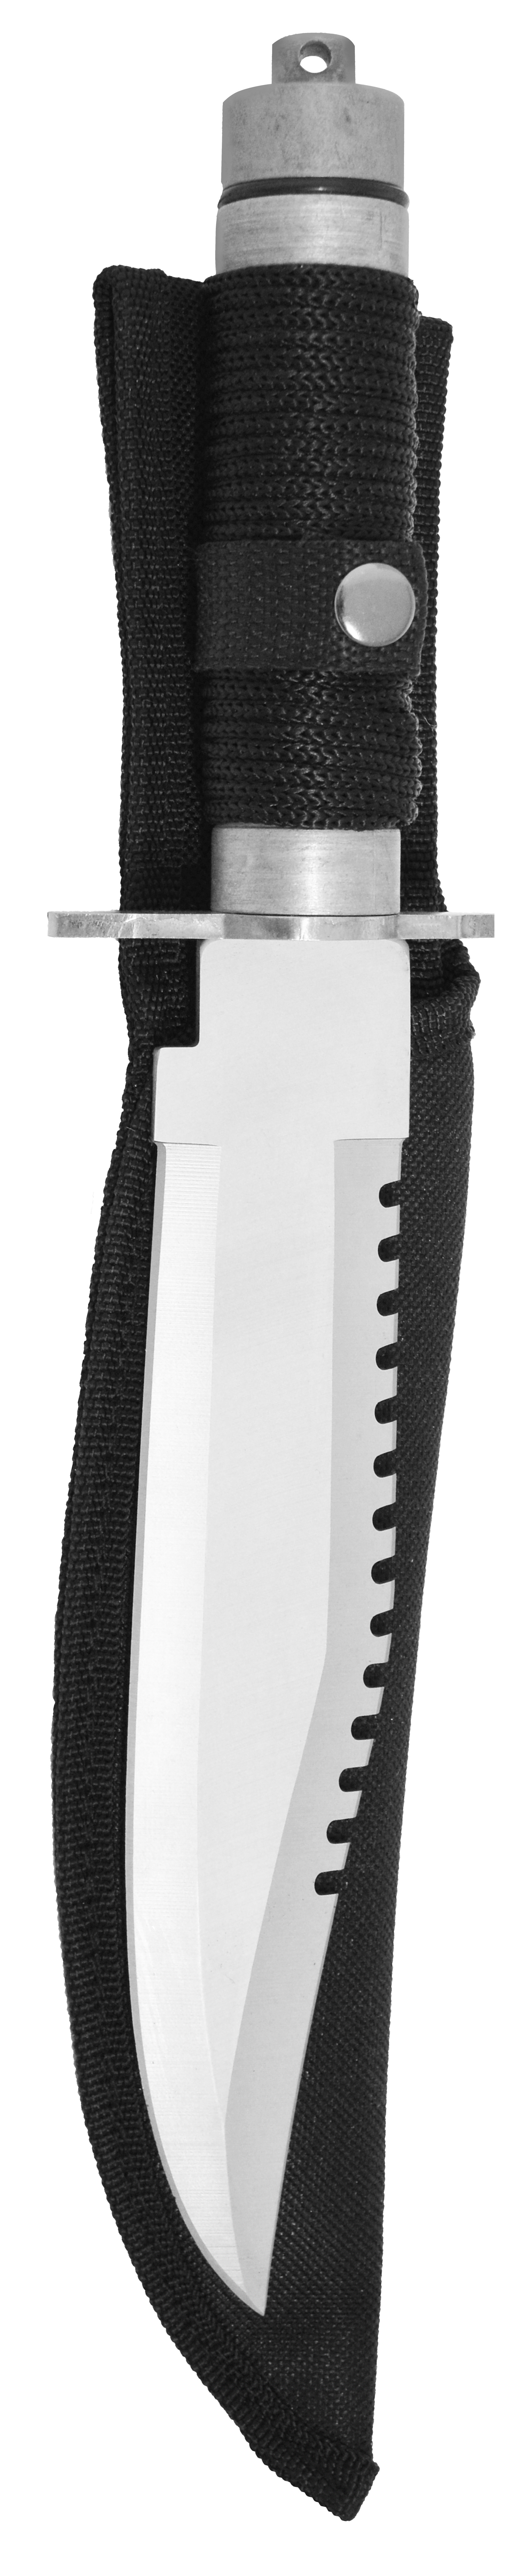 Survival Knife 14036 Hunting Survival Knife, 8-Inch Stainless Steel Blade, Paracord Grip, Compass, Nylon Sheath